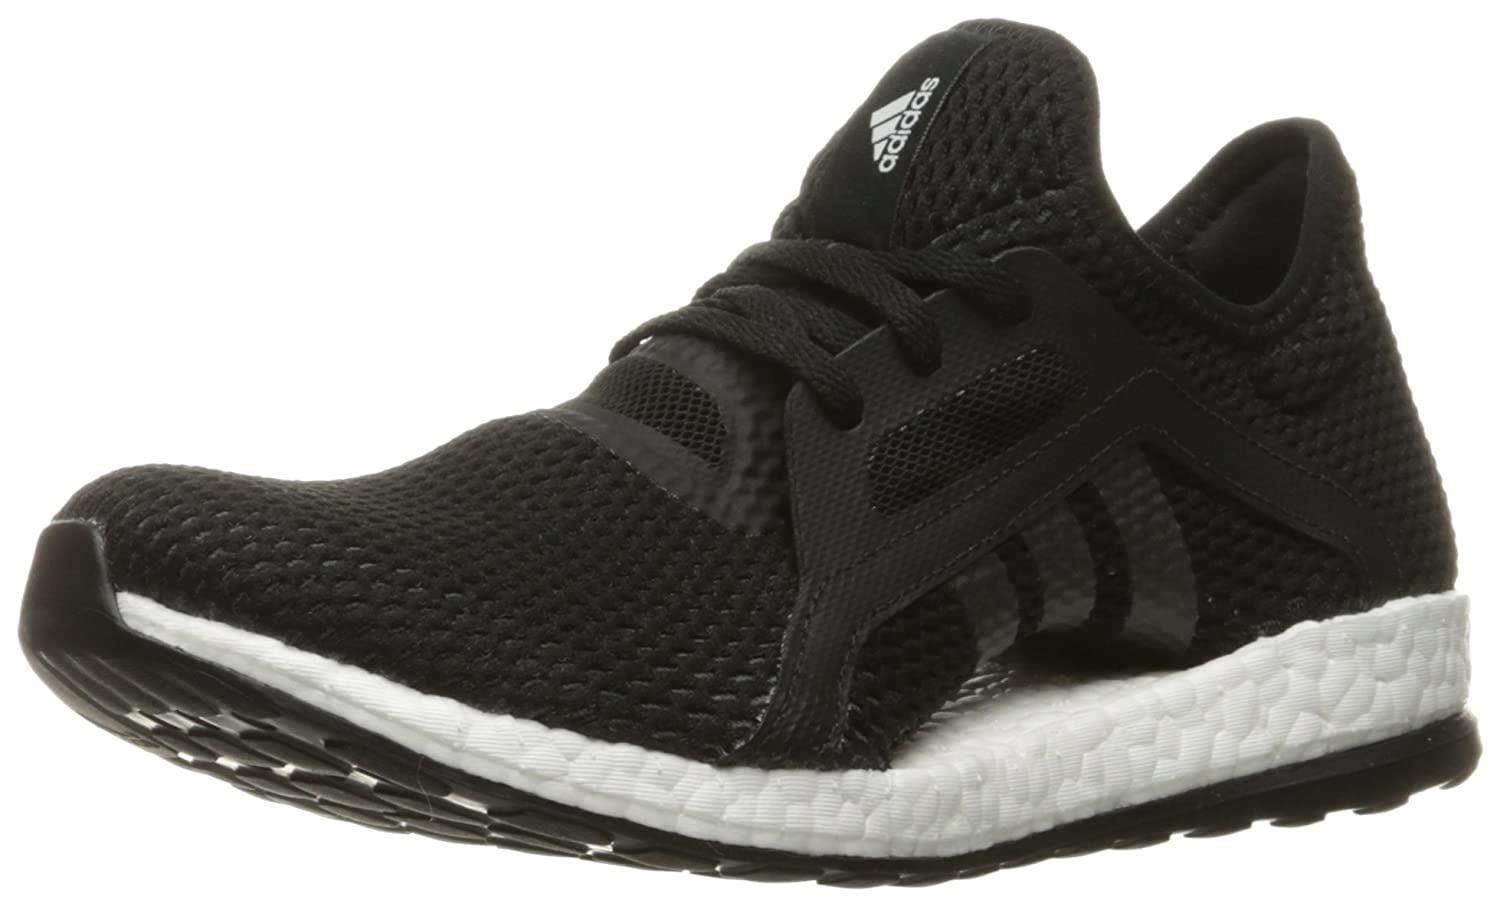 adidas Performance Women's Pureboost X Running Shoe B01B3ROOTG 7.5 B(M) US|Black/Black/Solid Grey